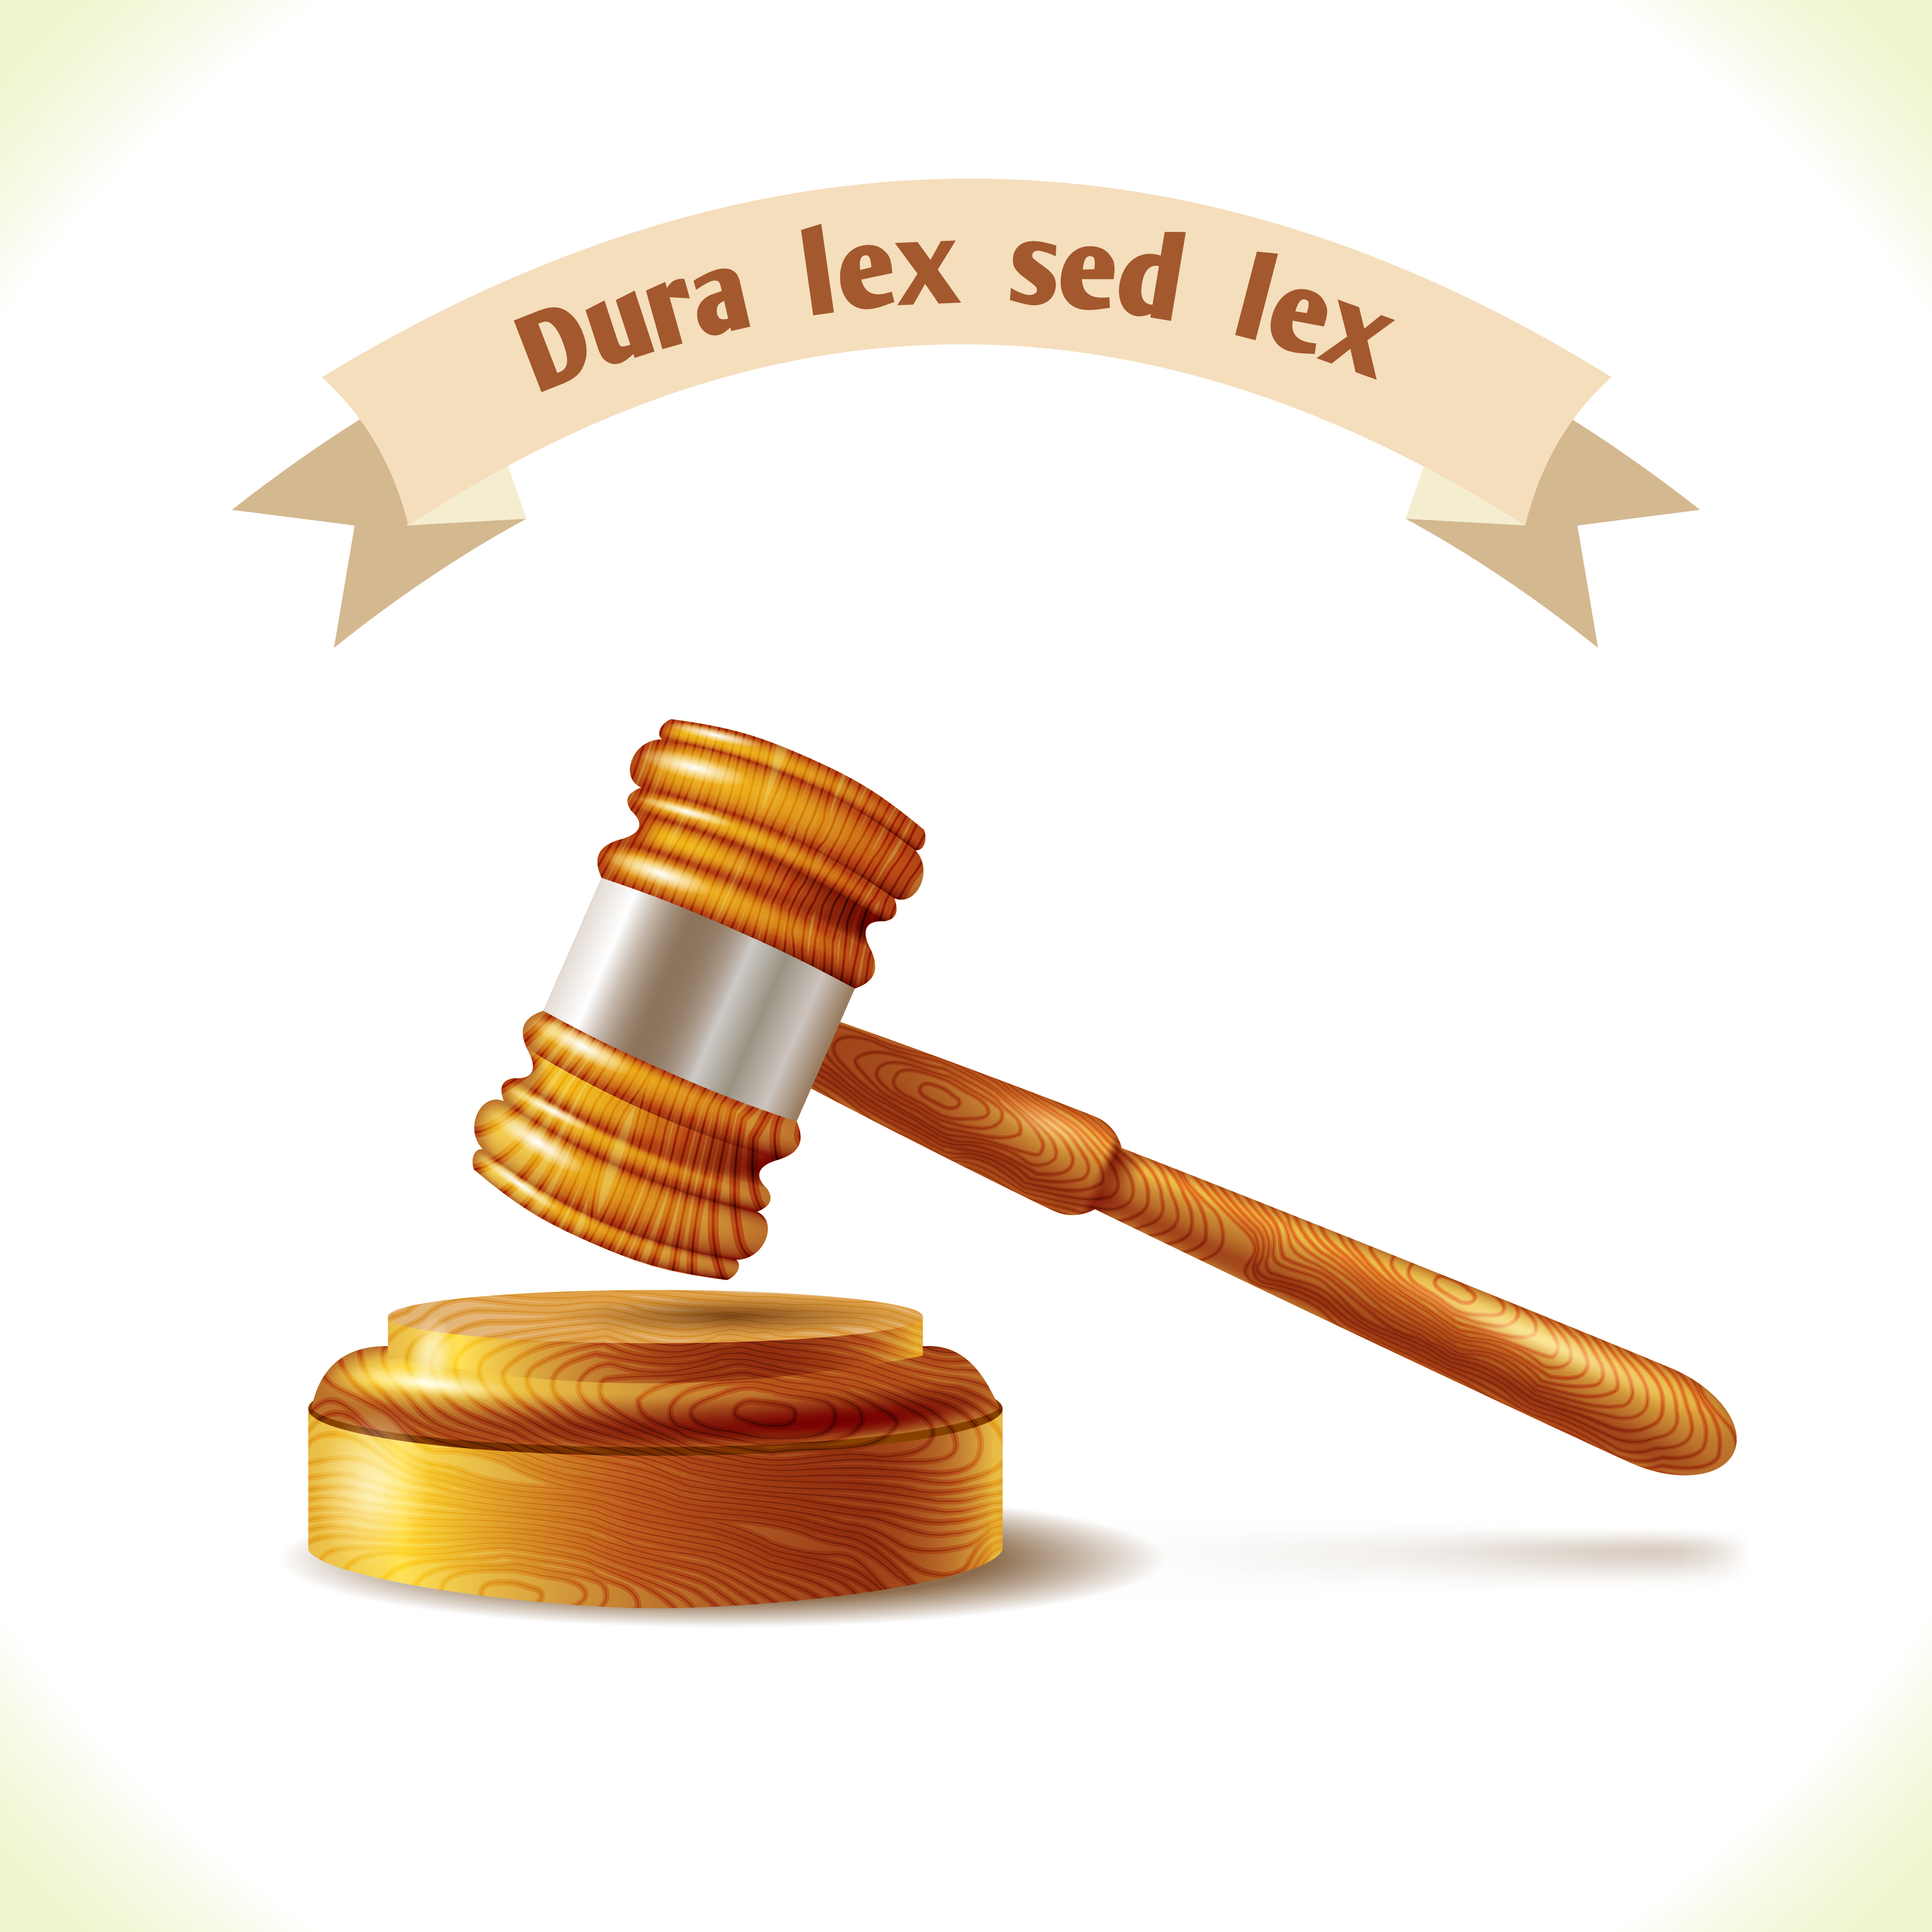 Law icon judge gavel - Download Free Vectors, Clipart ...